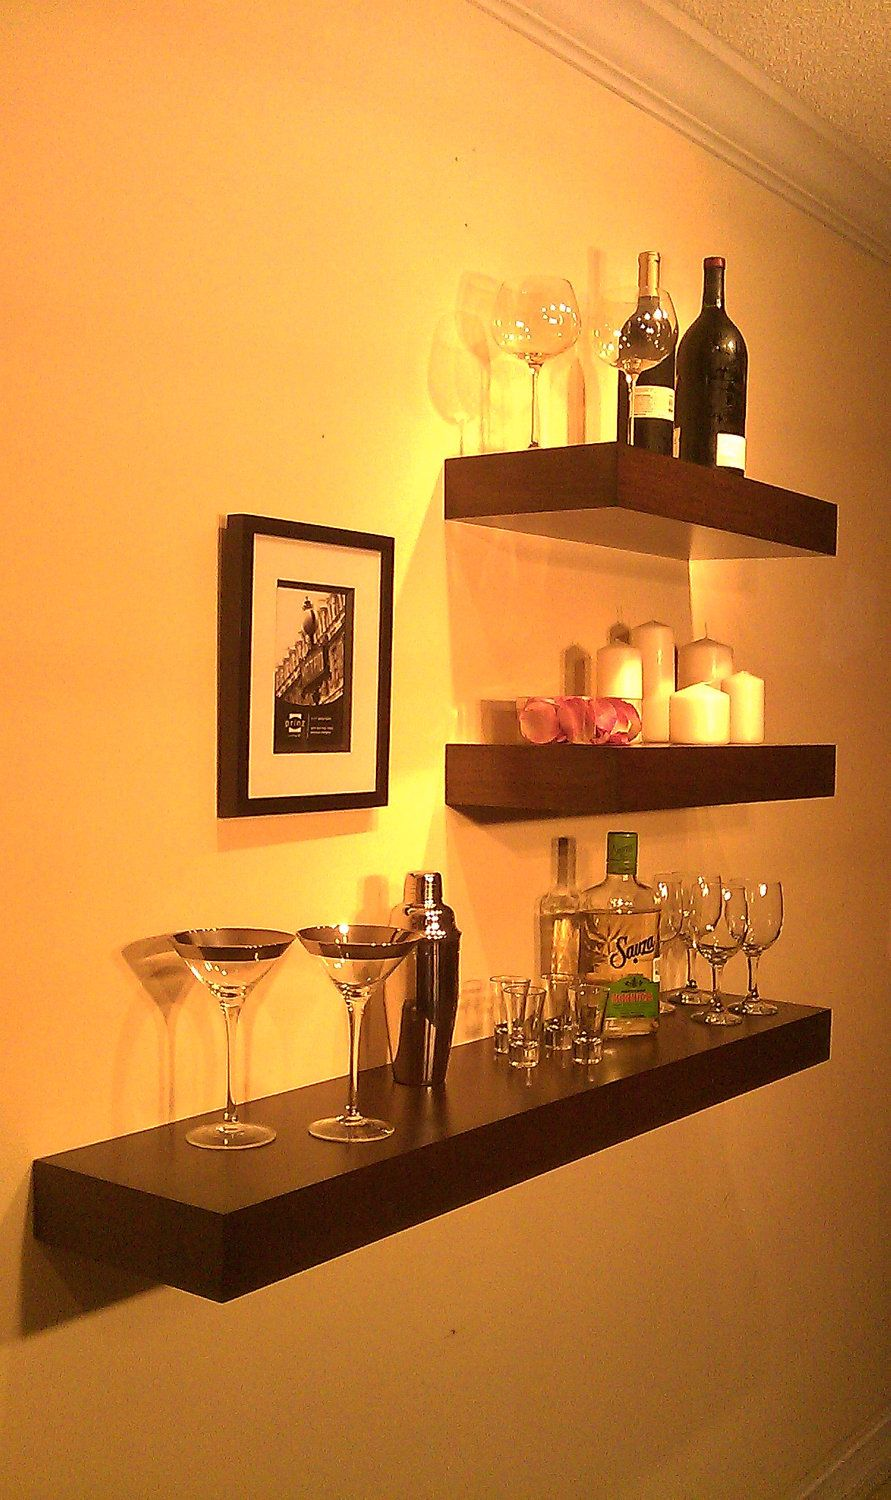 decorative wall shelves - Decorative Wall Shelves